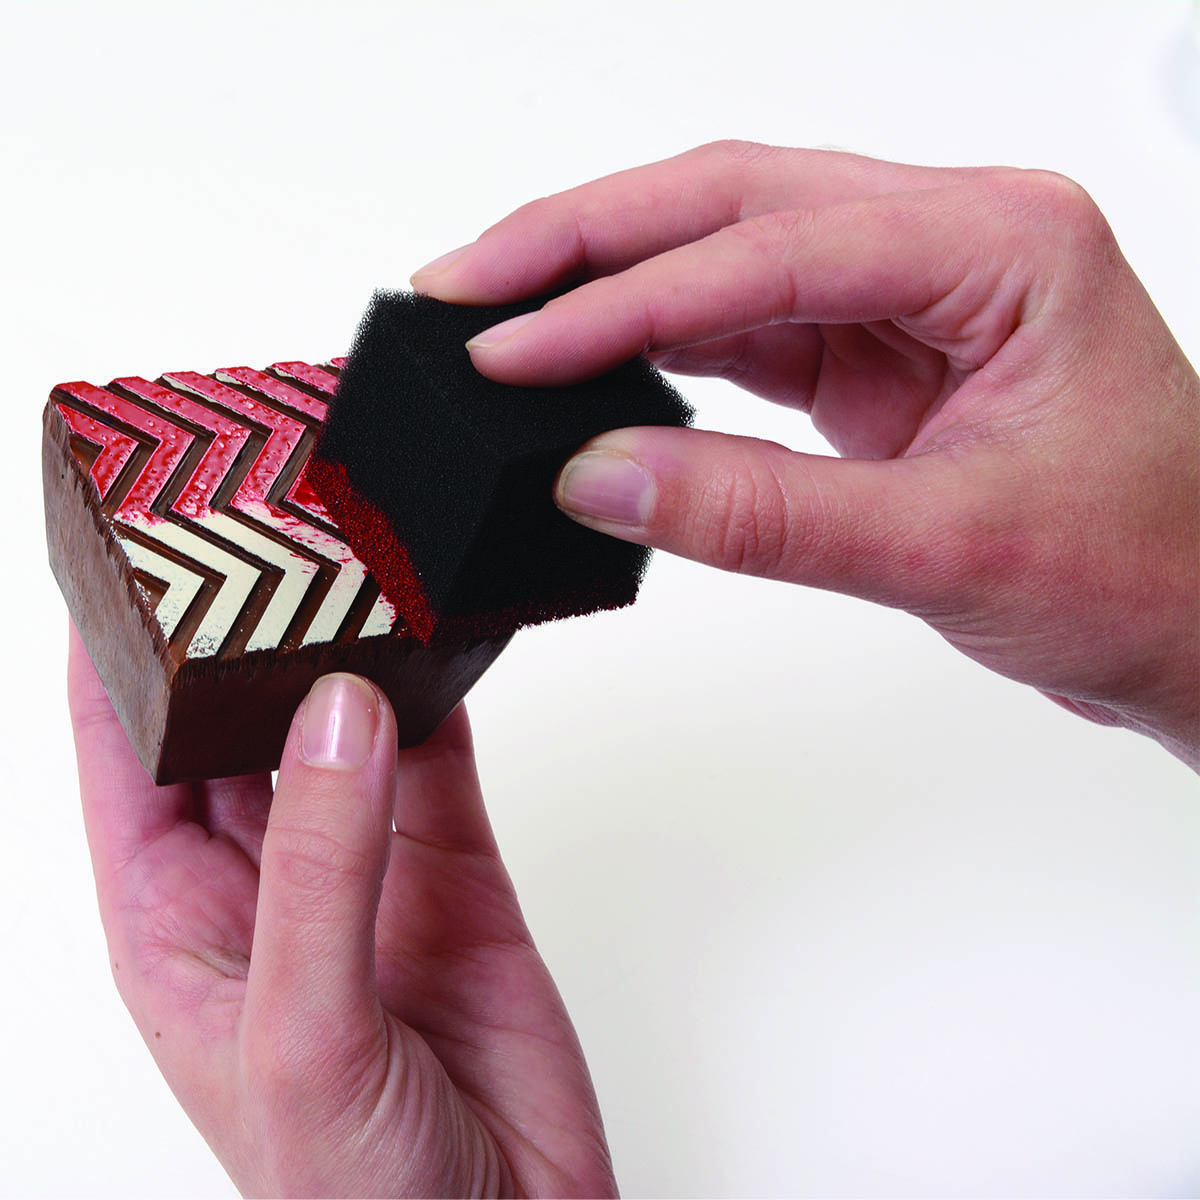 Fabric Creations™ Tools - Sponge Cubes